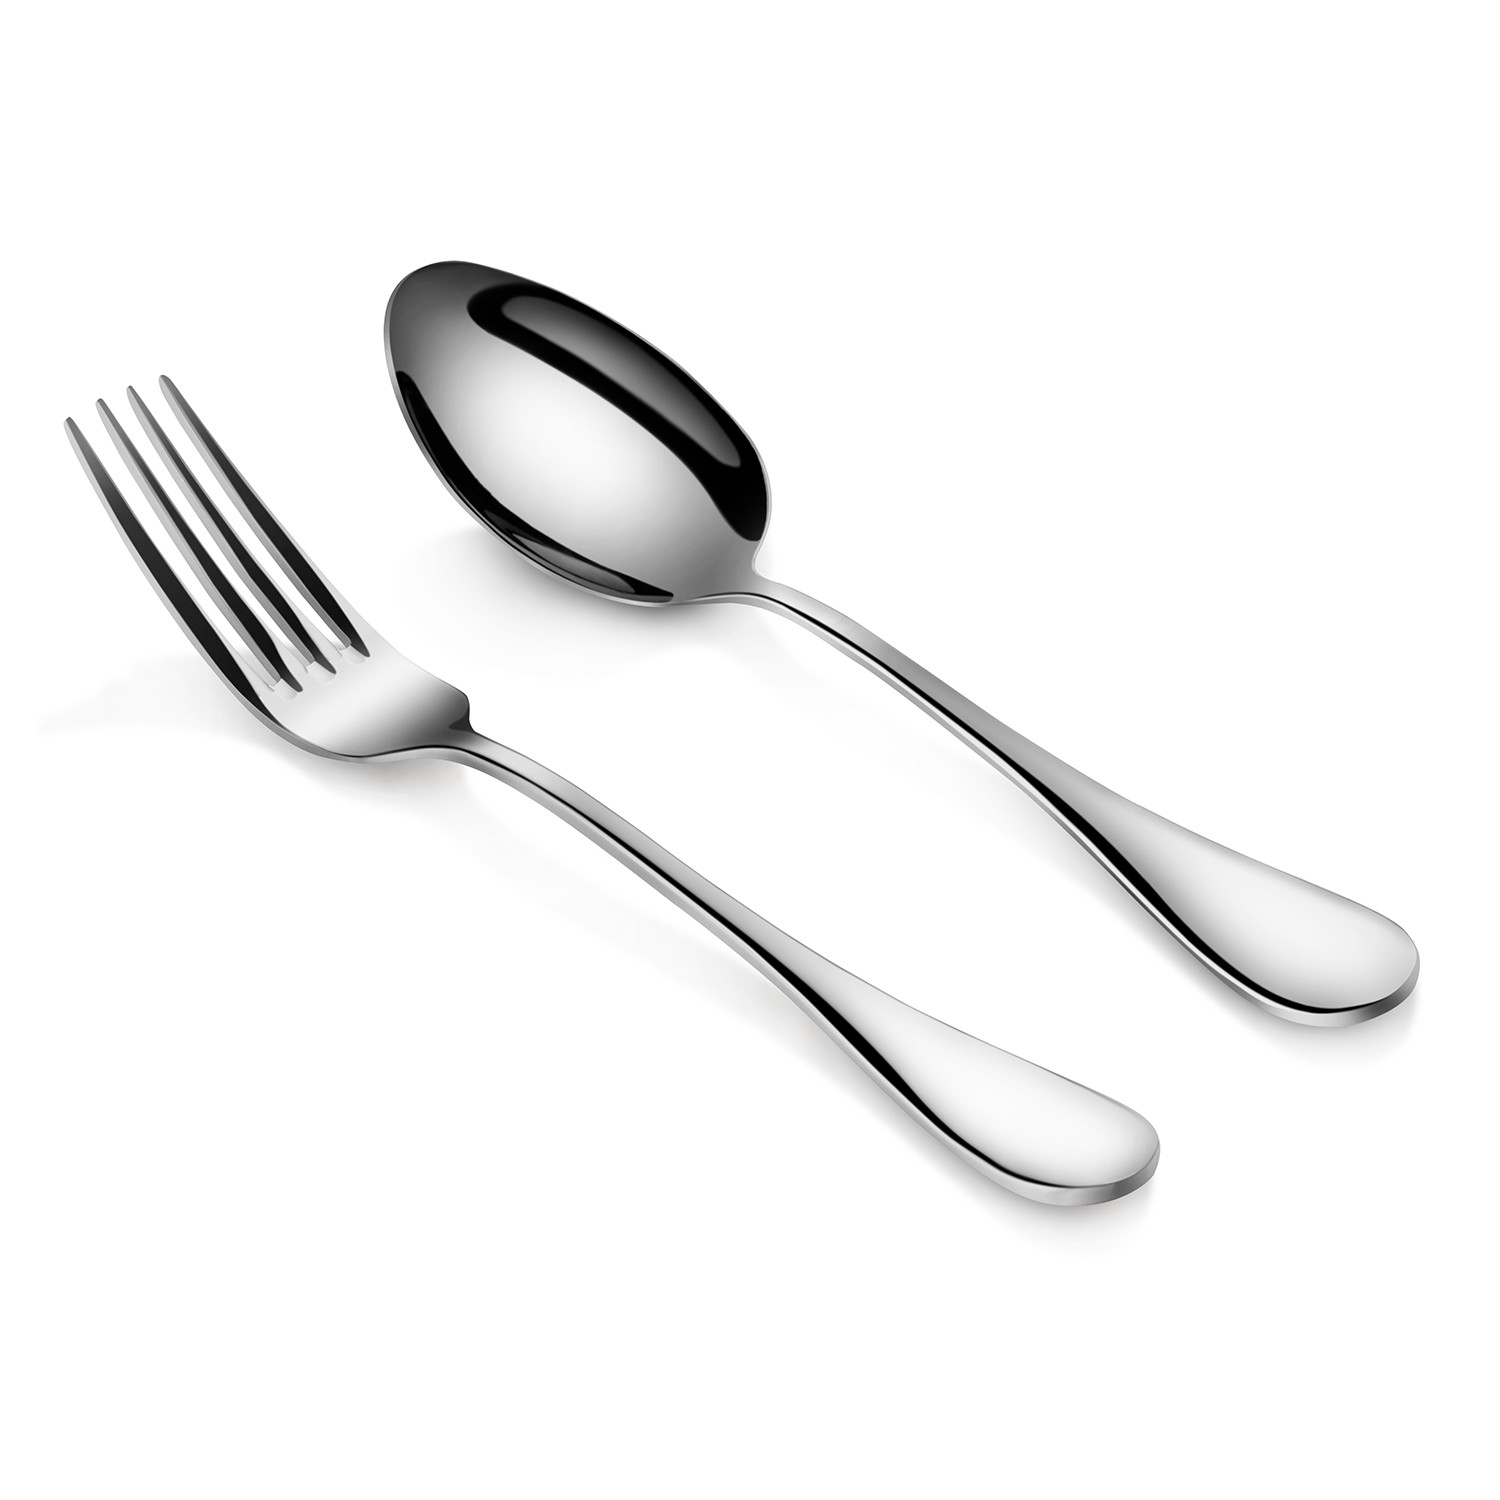 table serving spoon fork set set of 6 silver artaste touch of modern. Black Bedroom Furniture Sets. Home Design Ideas